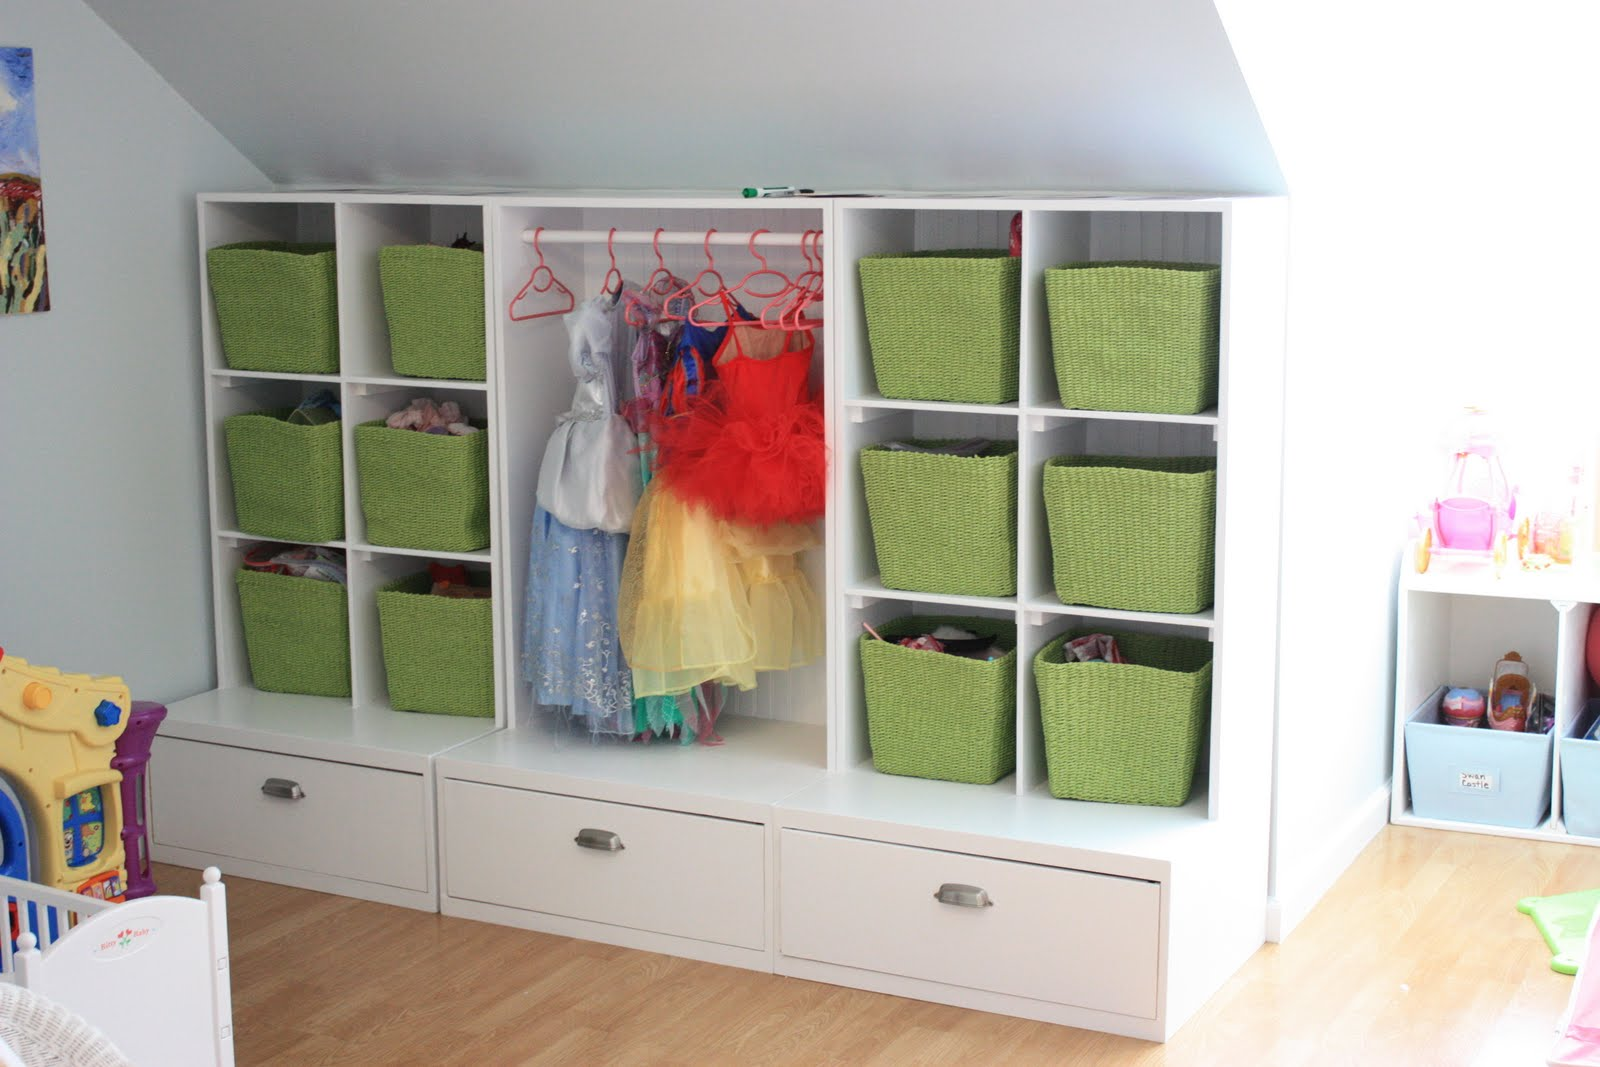 Trey and Abby: My Playroom Storage Solution!